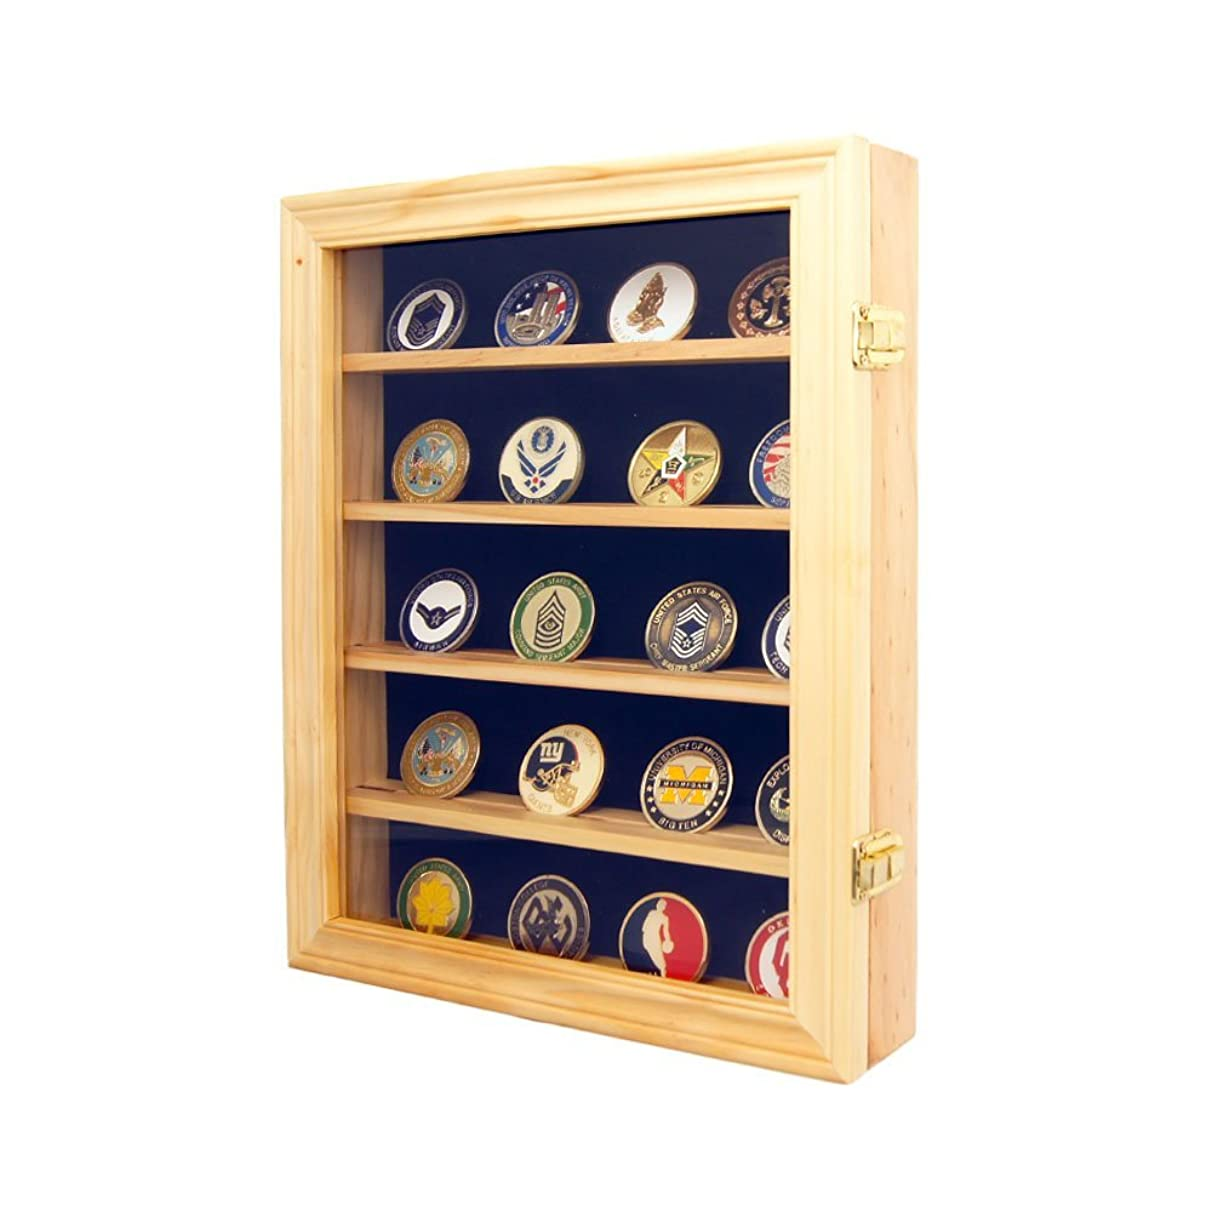 DECOMIL - Lockable 30 Military Challenge Coin, Poker Chip, Sports Coin Display Case Cabinet, Glass door, Coin30-OA